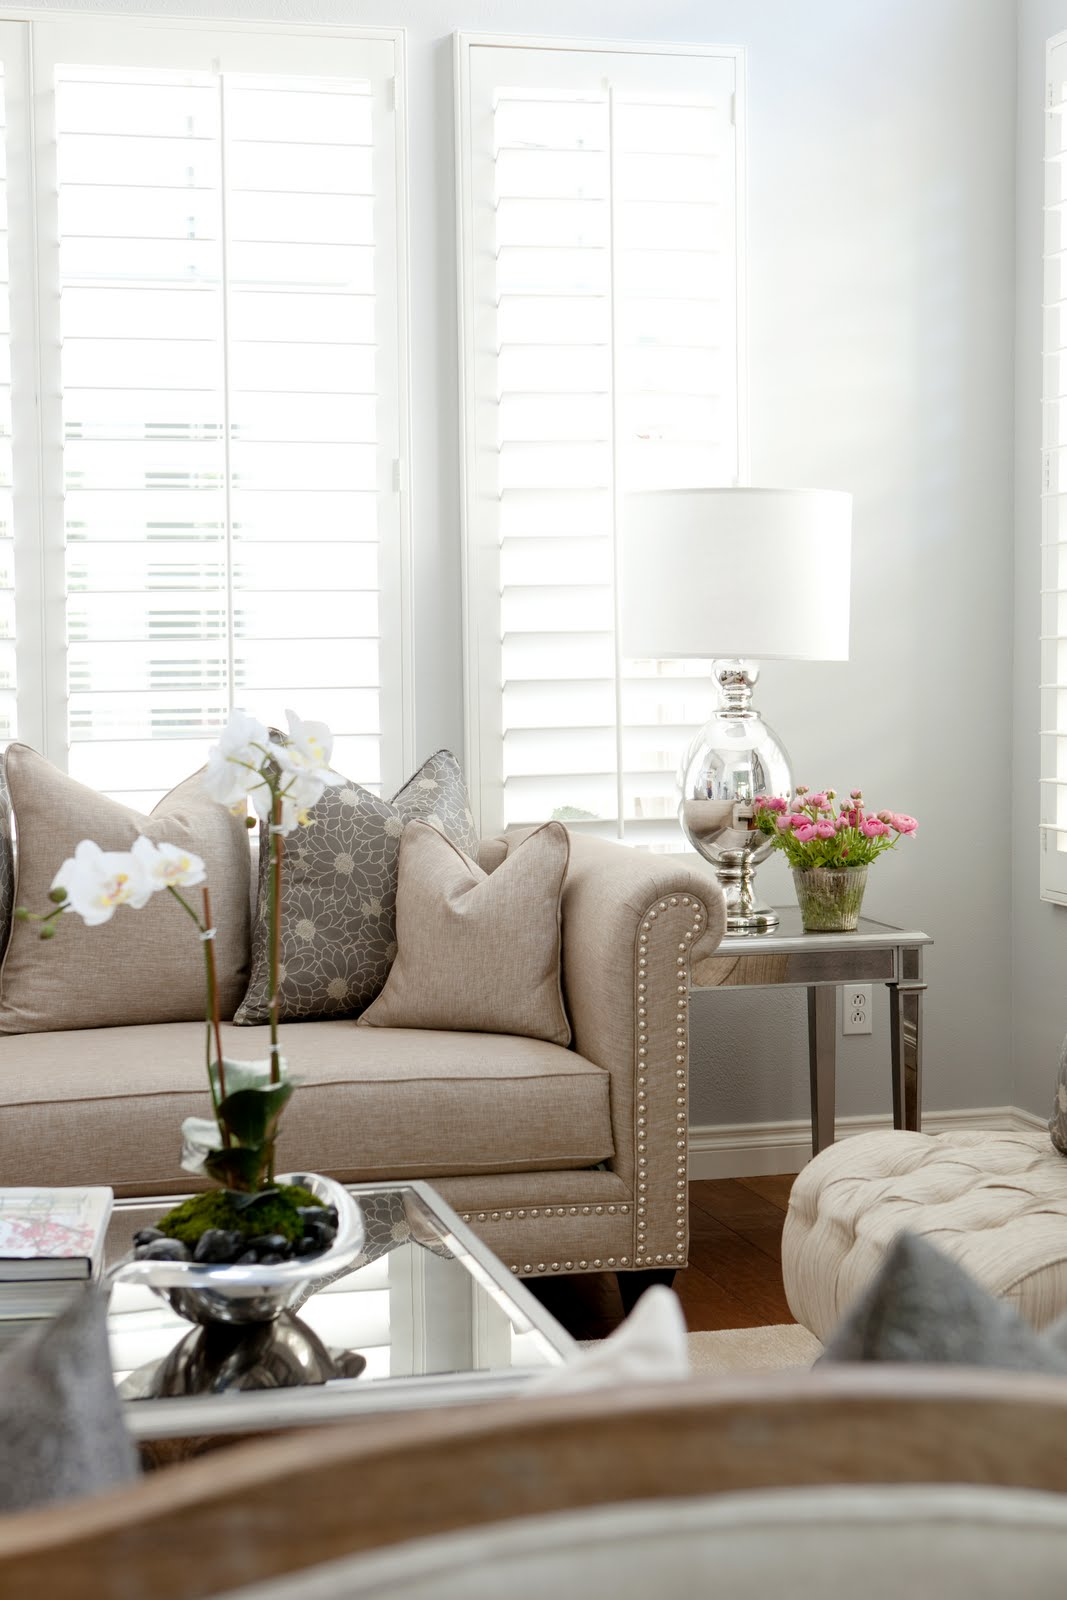 BDG Style: OLD HOLLYWOOD GLAM meets OC LIVING ROOM